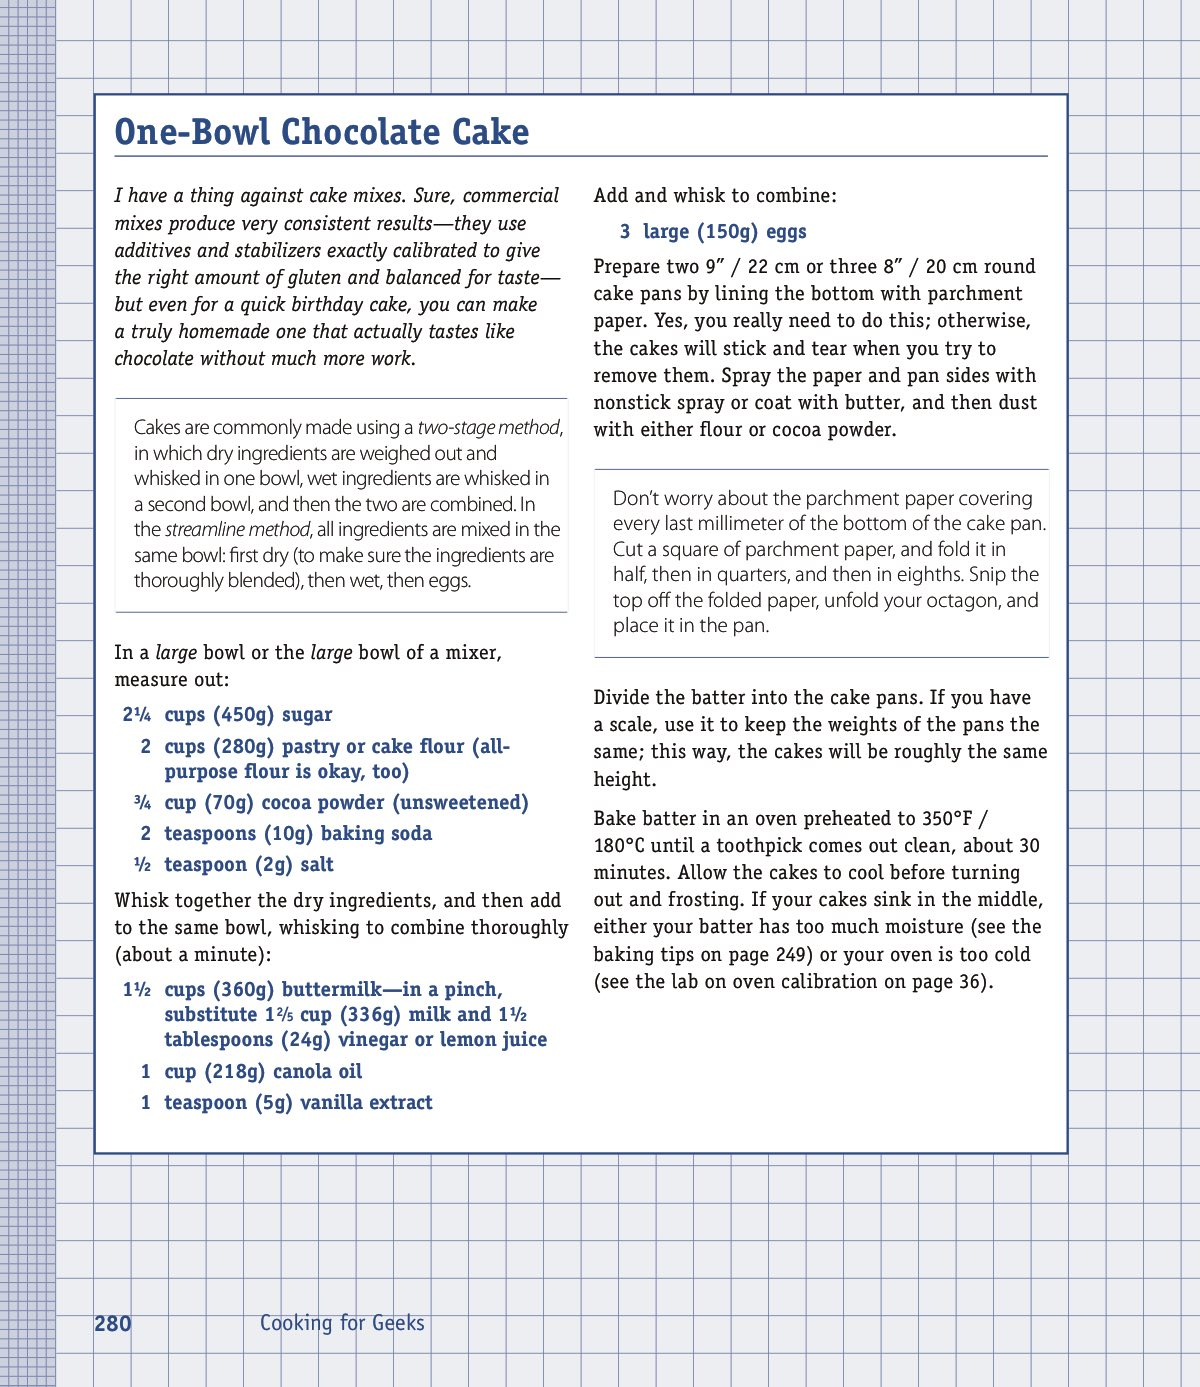 Cooking for Geeks - Page 280